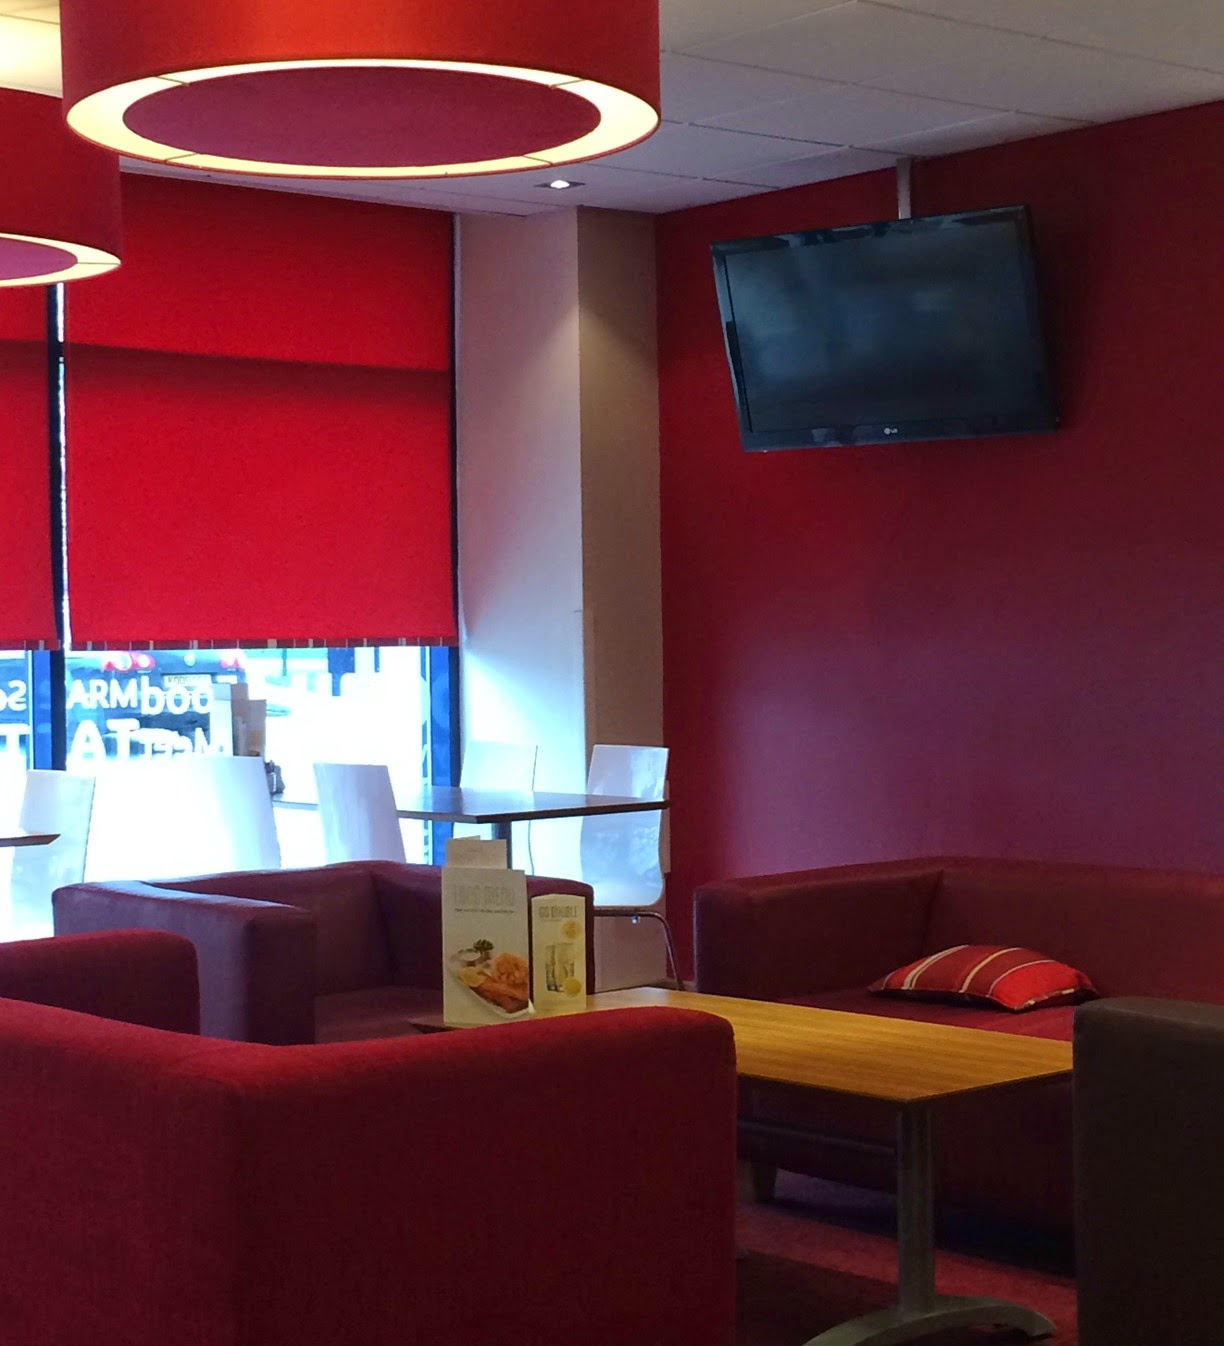 Travelodge Birmingham Airport lounge area